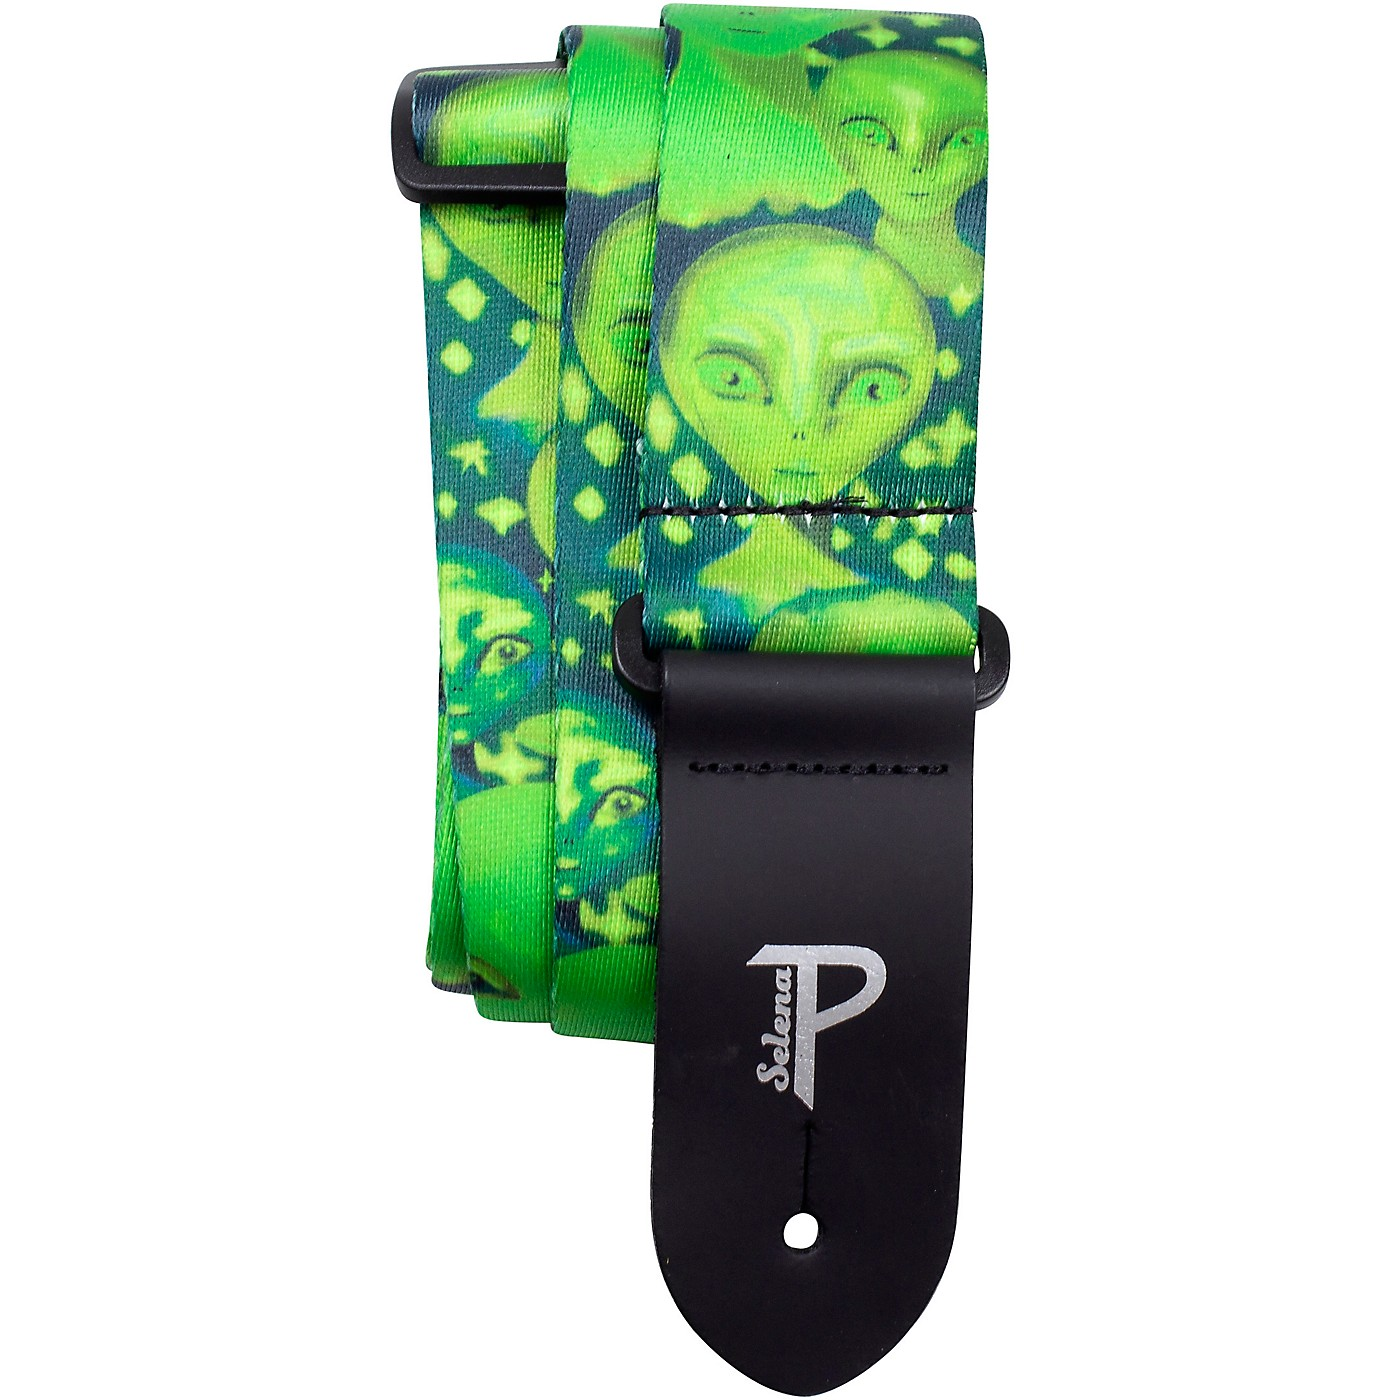 Perri's Polyester Guitar Strap - Green Aliens, 2in Wide thumbnail